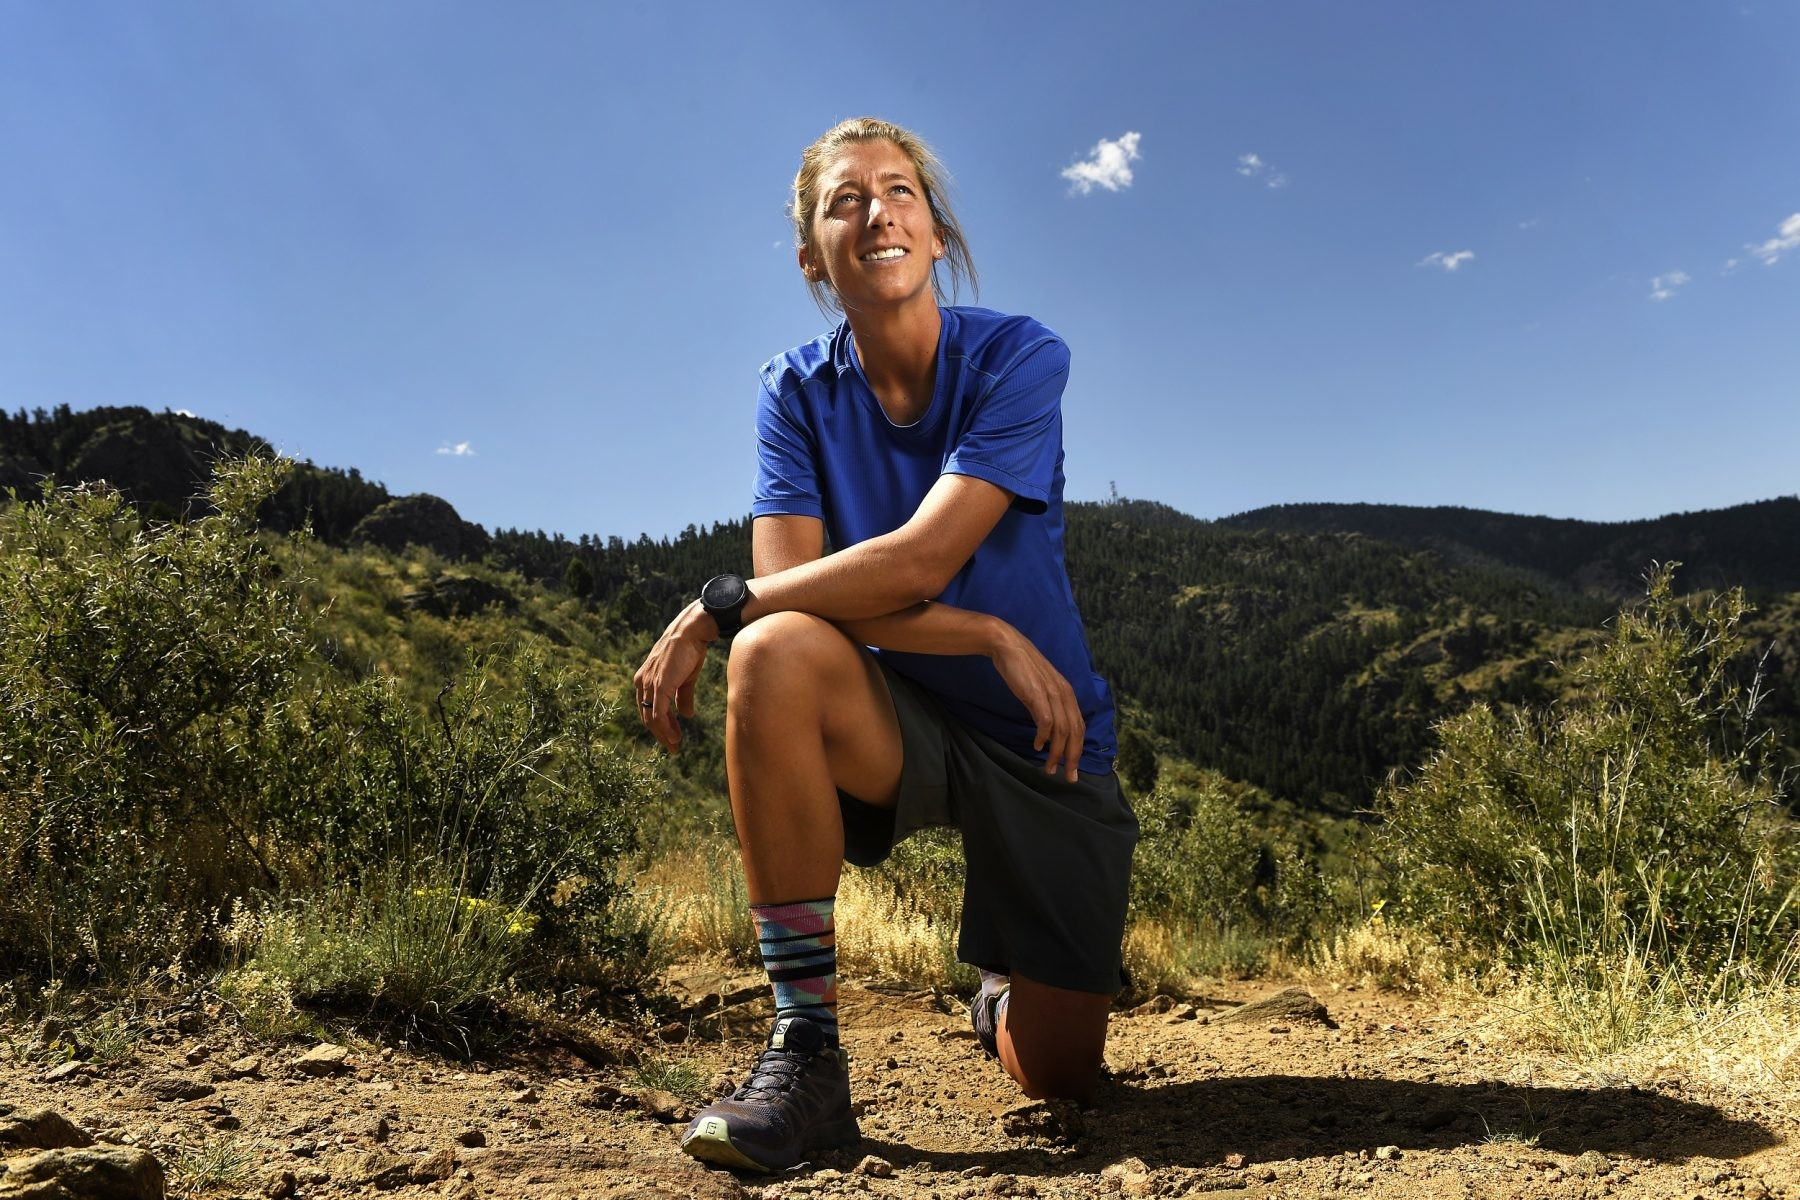 Courtney Dauwalter is one tough Ultra runner and wins many that she enters